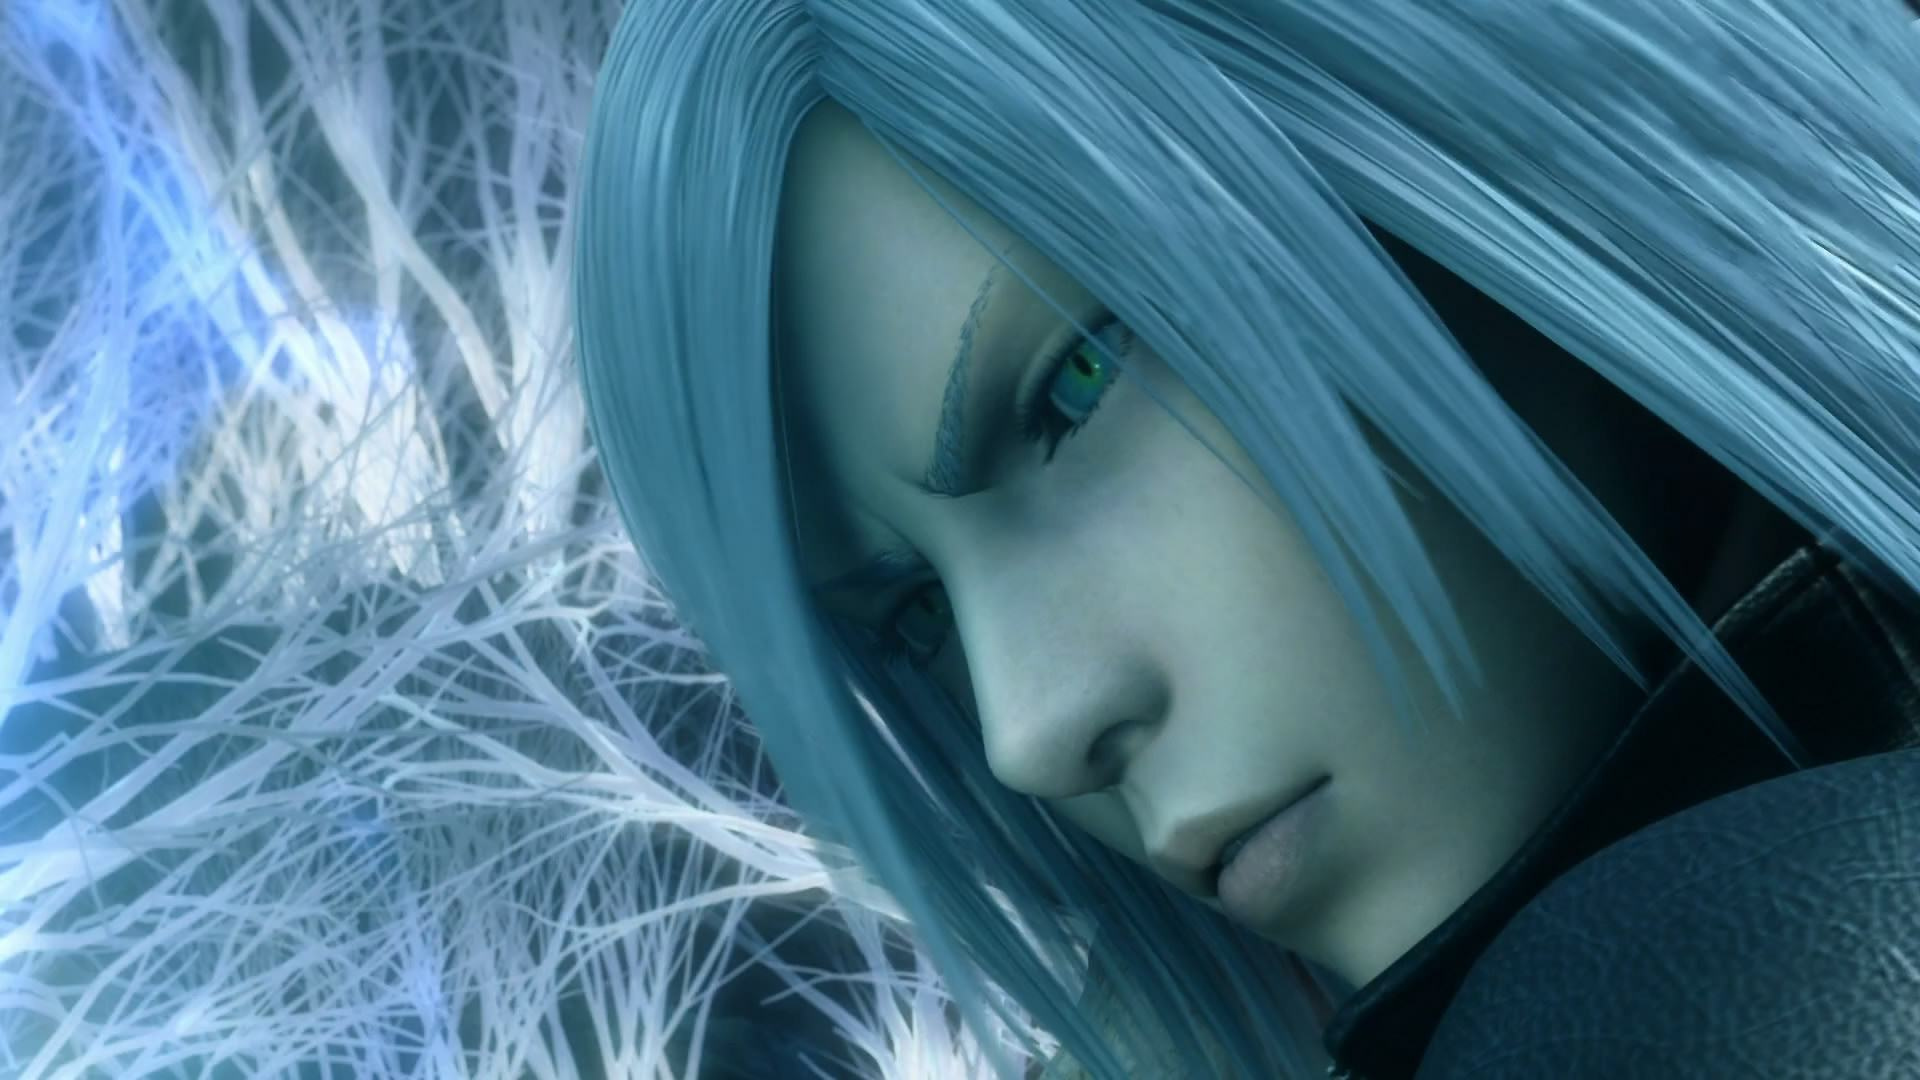 Wallpapers Backgrounds   Final Fantasy VII Advent Children 1920x1080